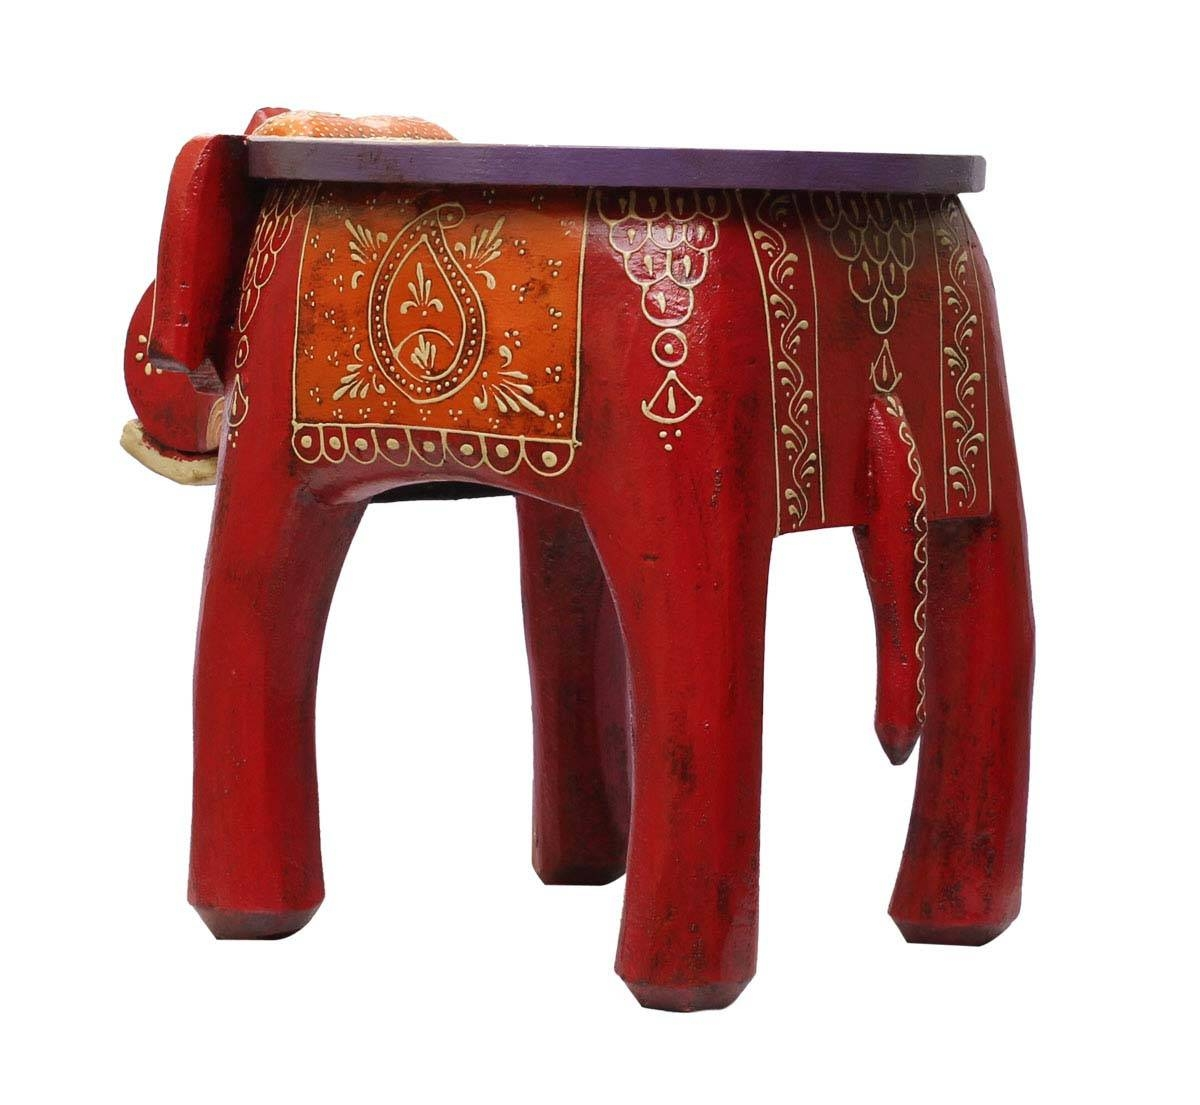 "Wholesale Handmade 12"" Elephant-Shaped Wooden Round Red Coffee throughout Round Red Coffee Tables (Image 30 of 30)"